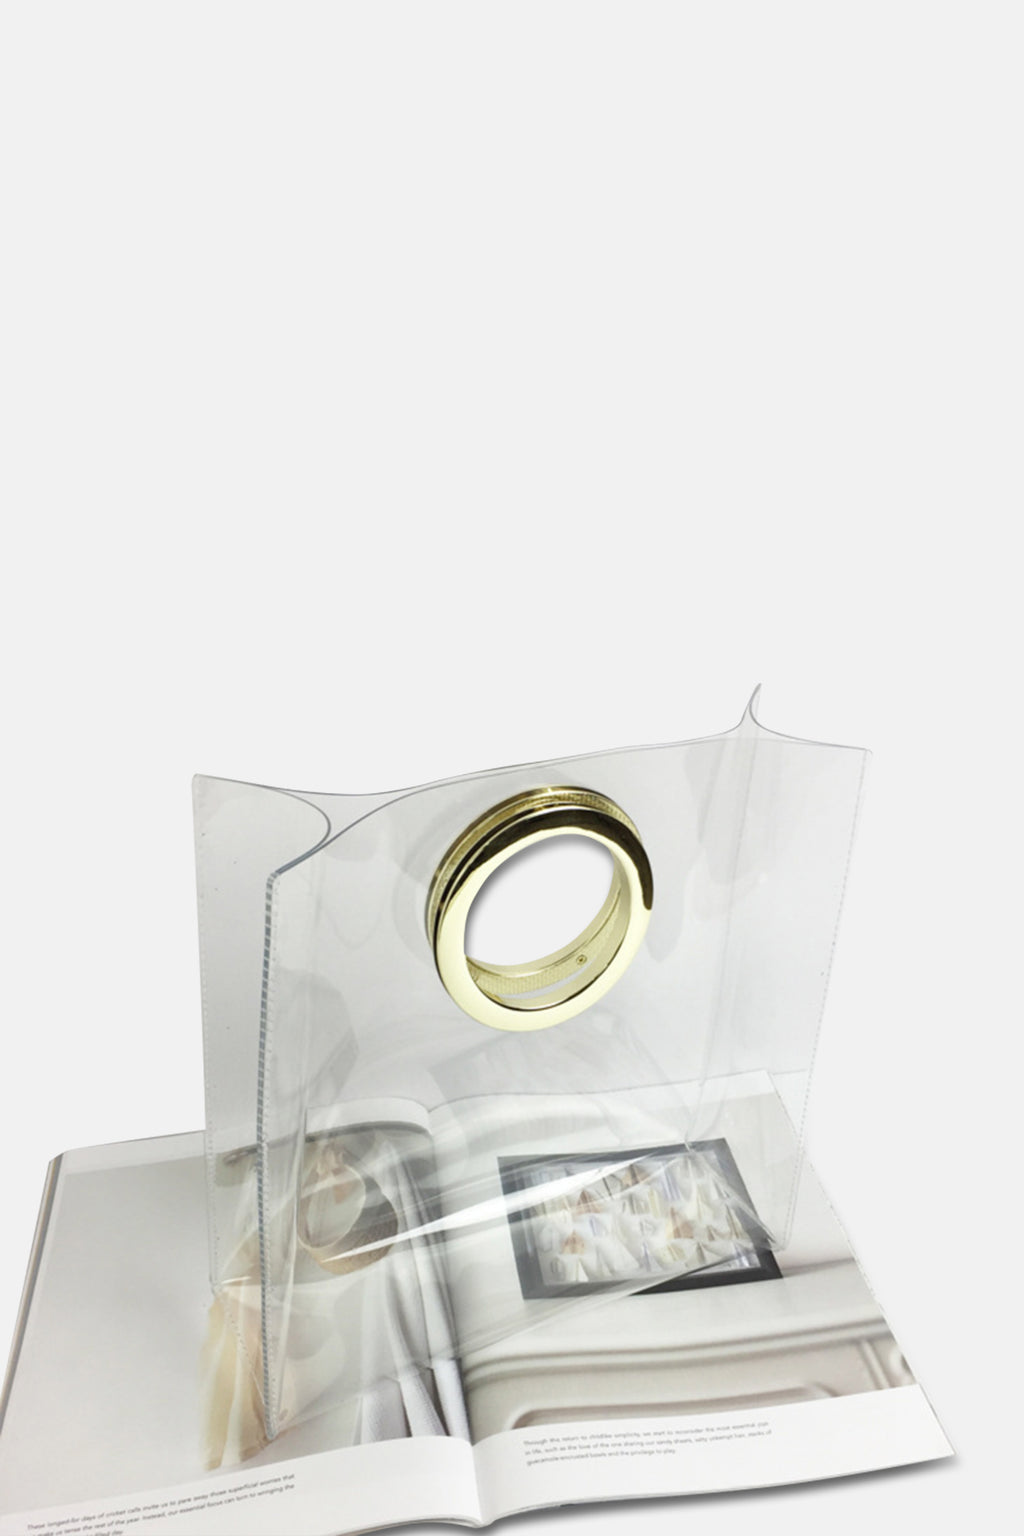 TRANSPARENT BAG WITH GOLD RING HANDLE